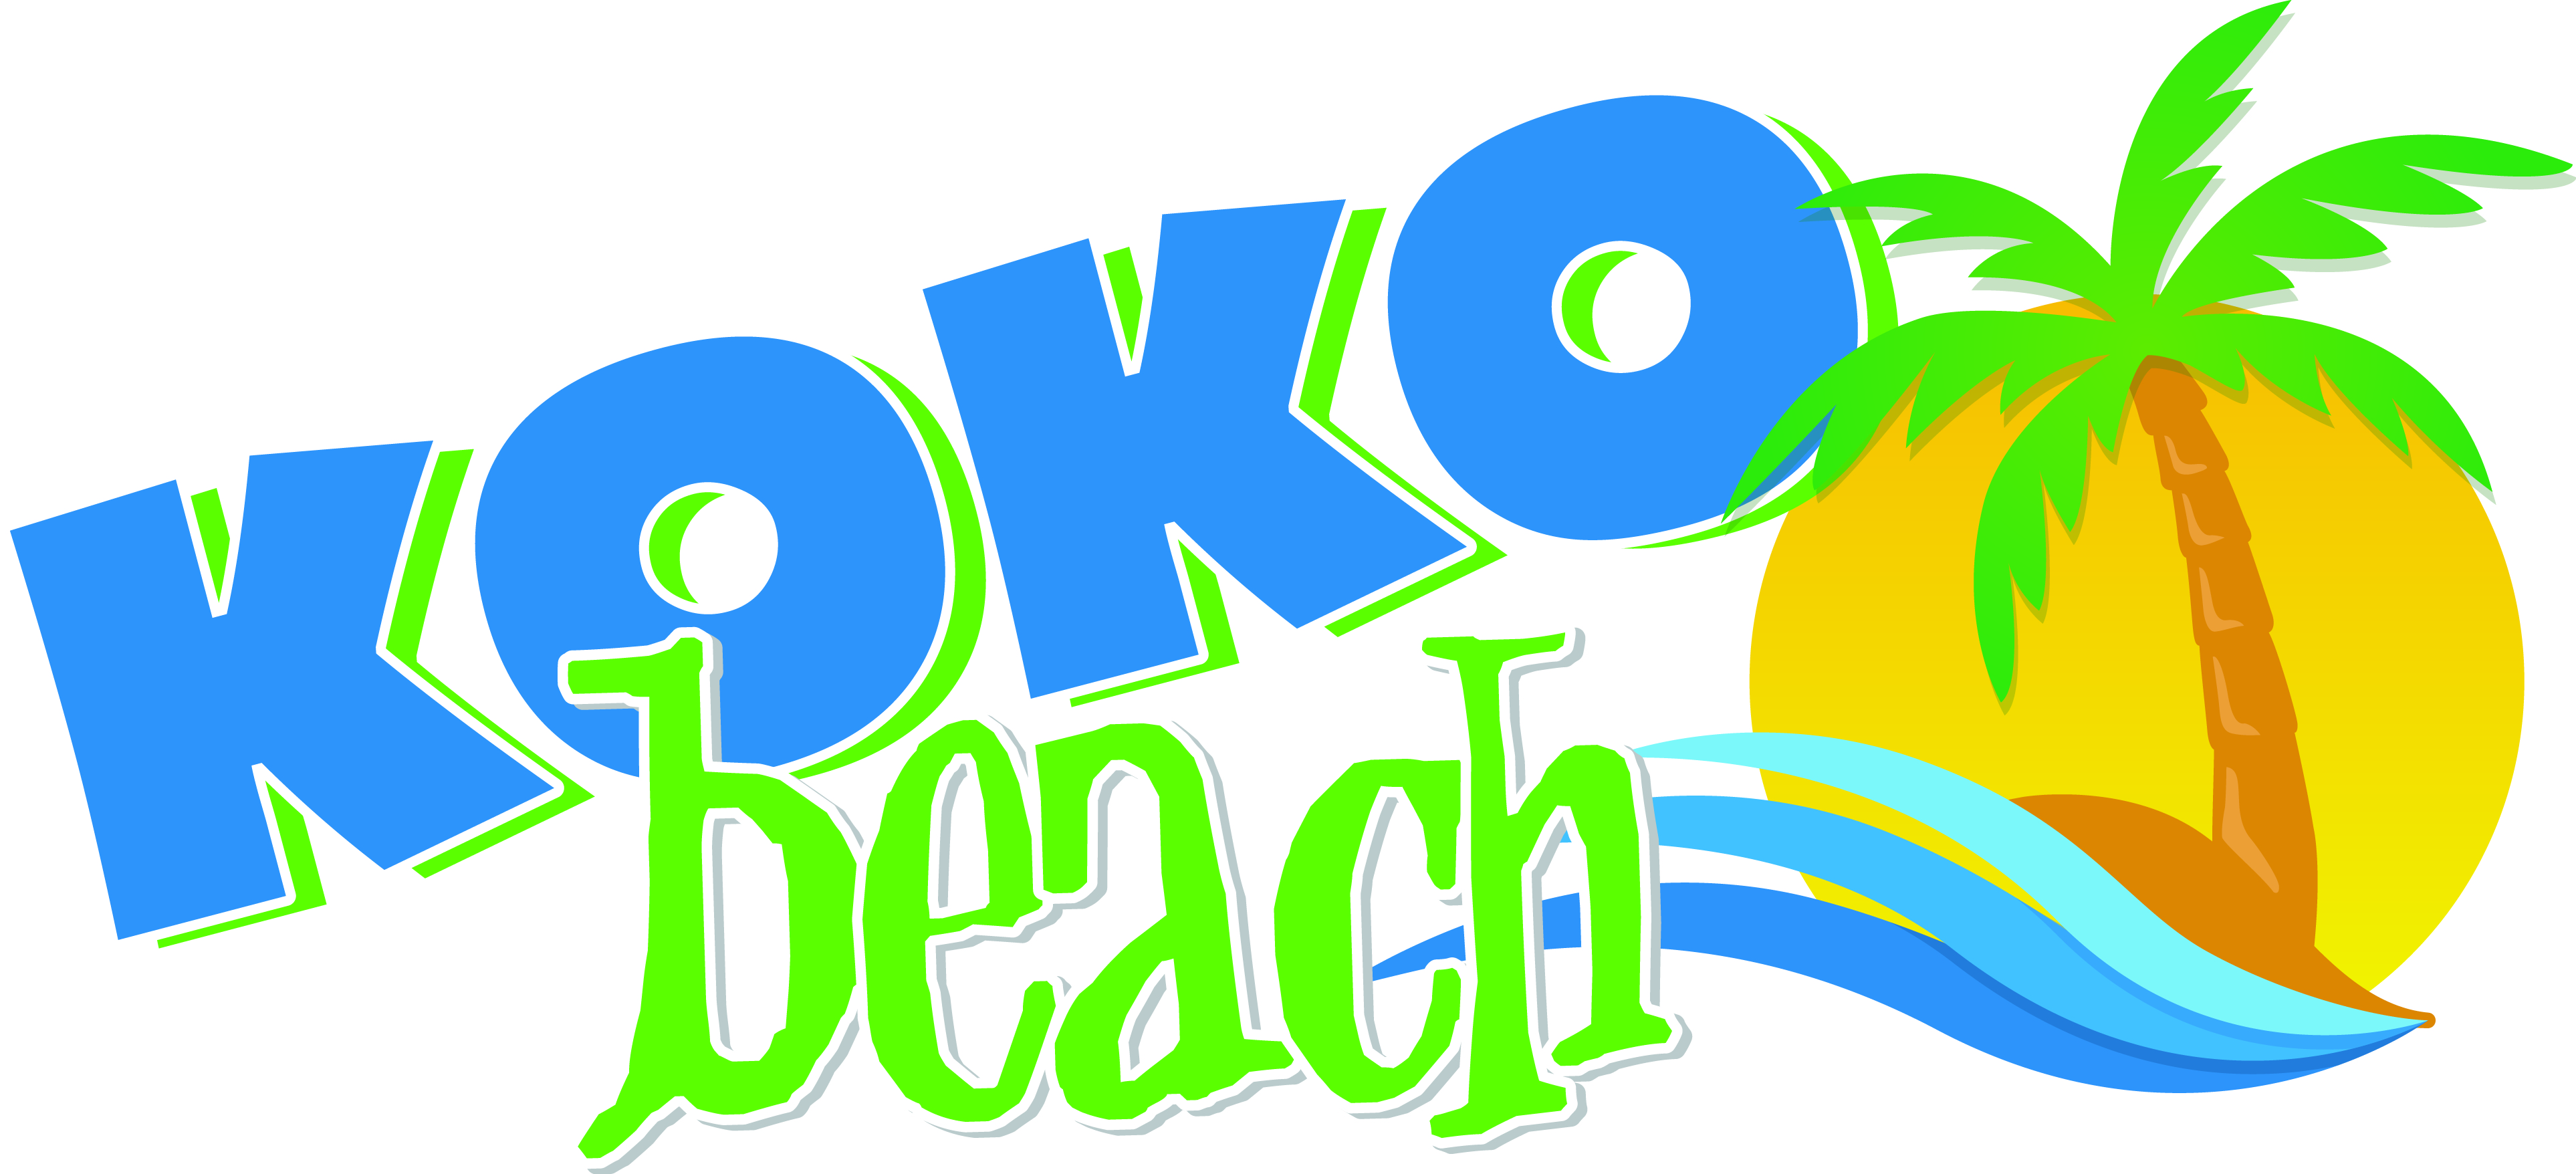 Koko Beach Tanning & Hair Salon logo